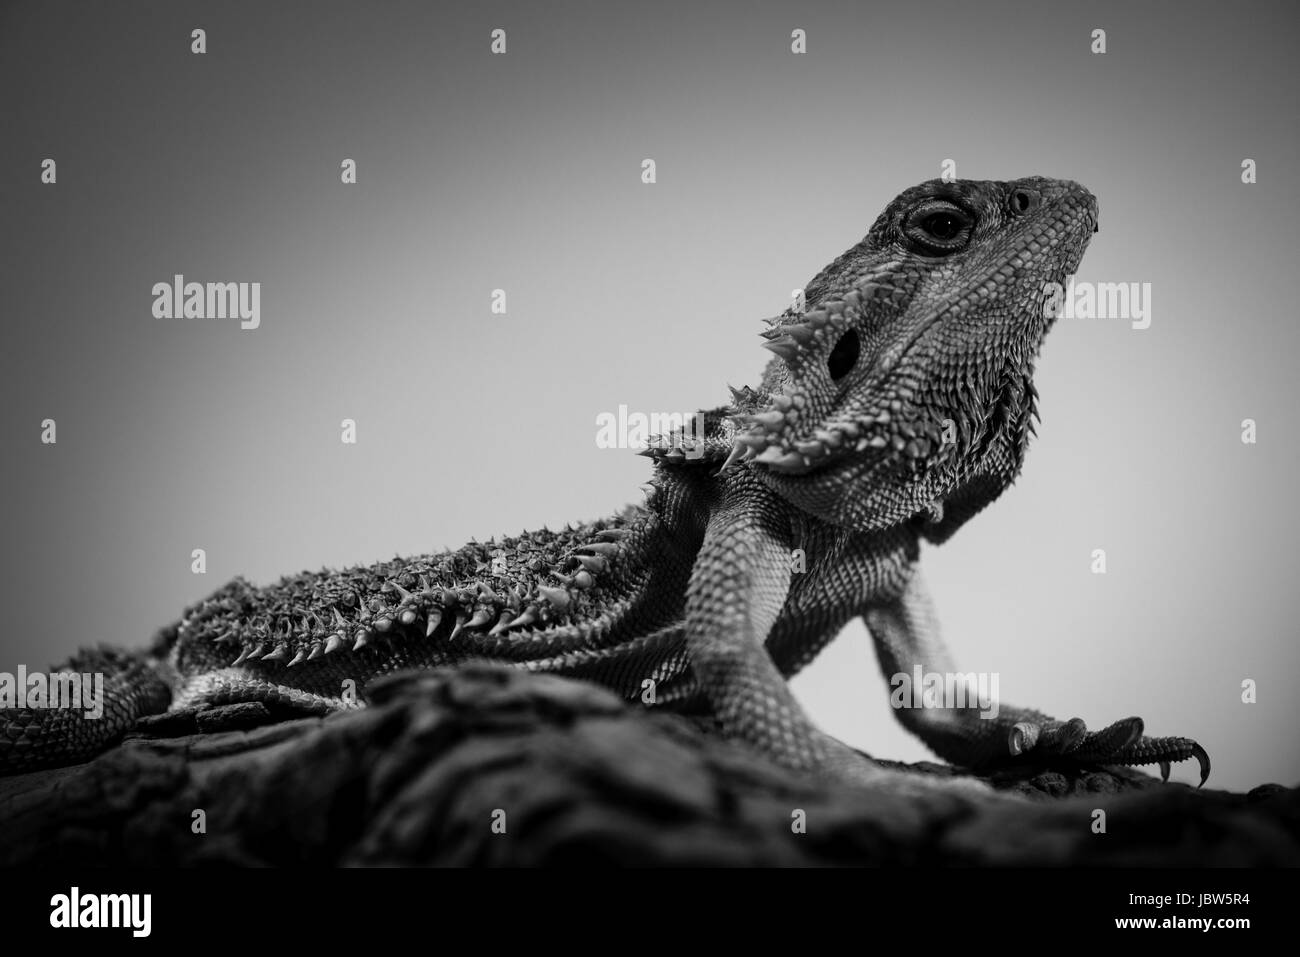 pogona - eastern bearded dragon - black and white animals portraits - Stock Image